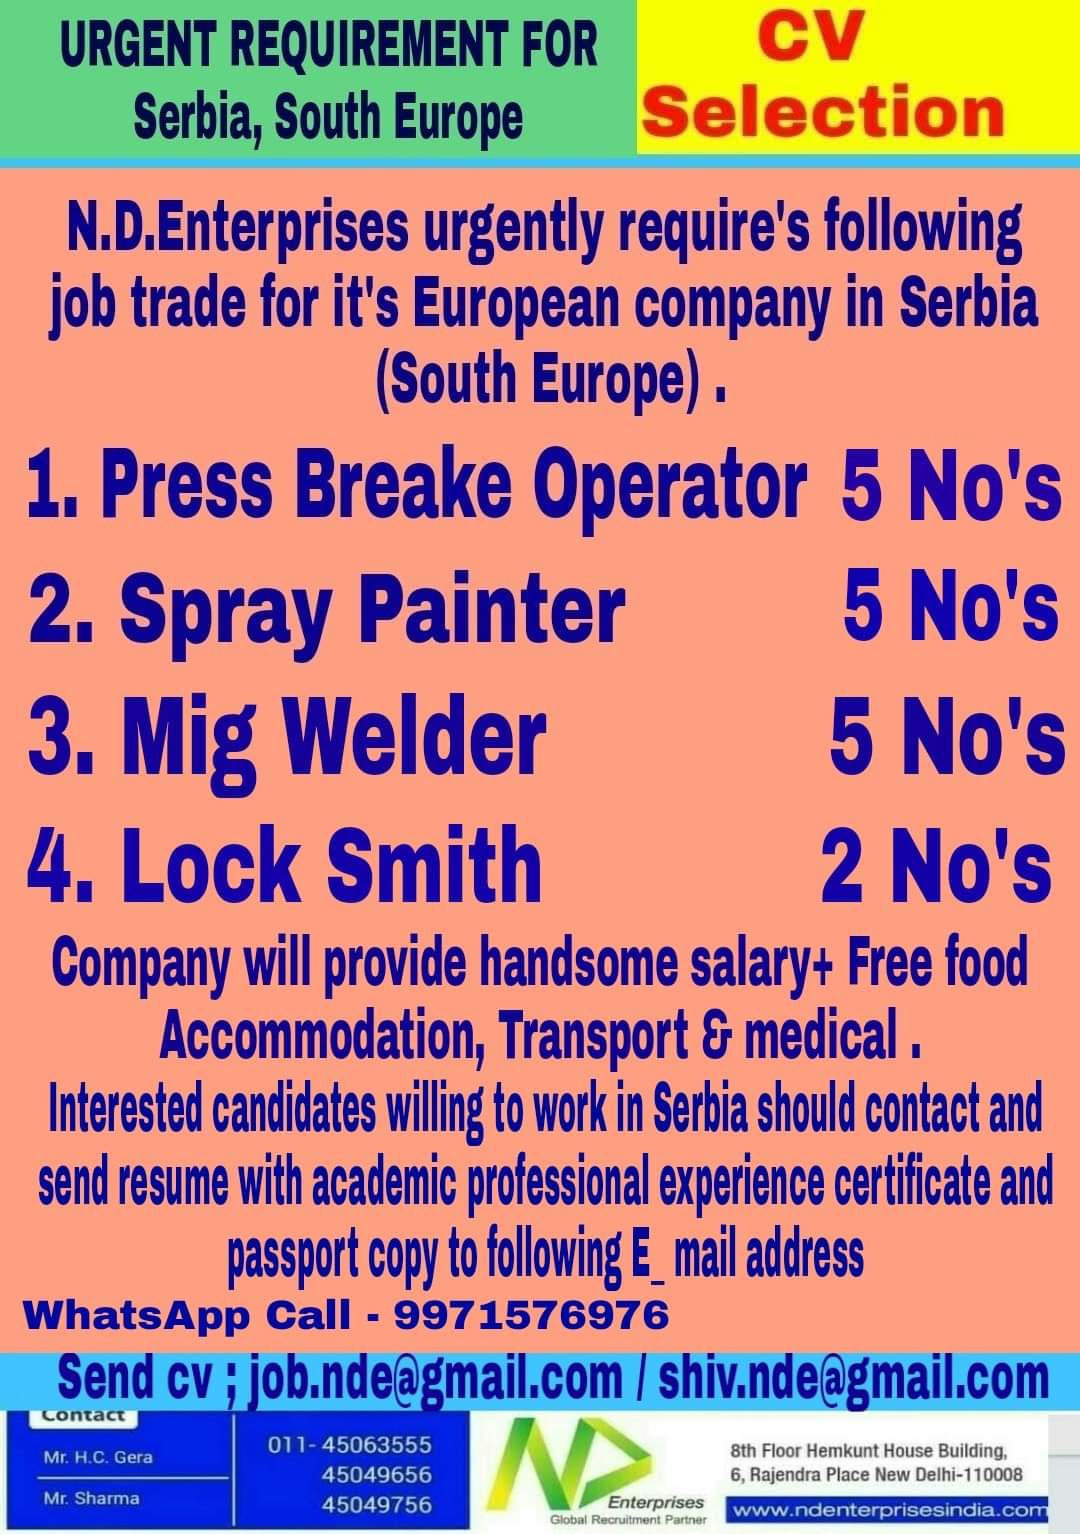 URGENT REQUIREMENT FOR SERBIA, SOUTH EUROPE